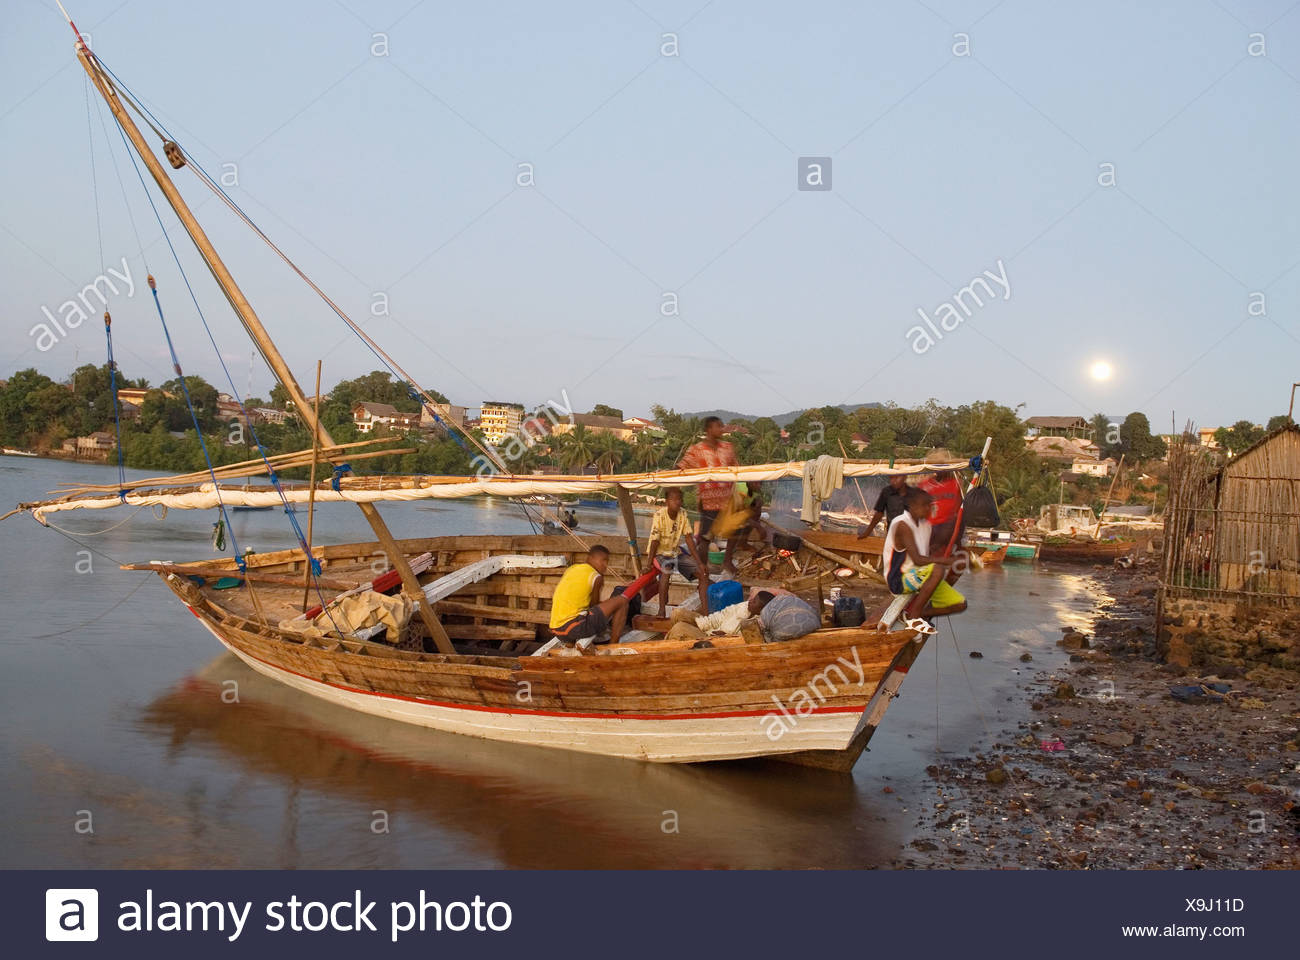 harbour of Hell-Ville Andoany, Nosy Be island, Republic of Madagascar, Indian Ocean - Stock Image